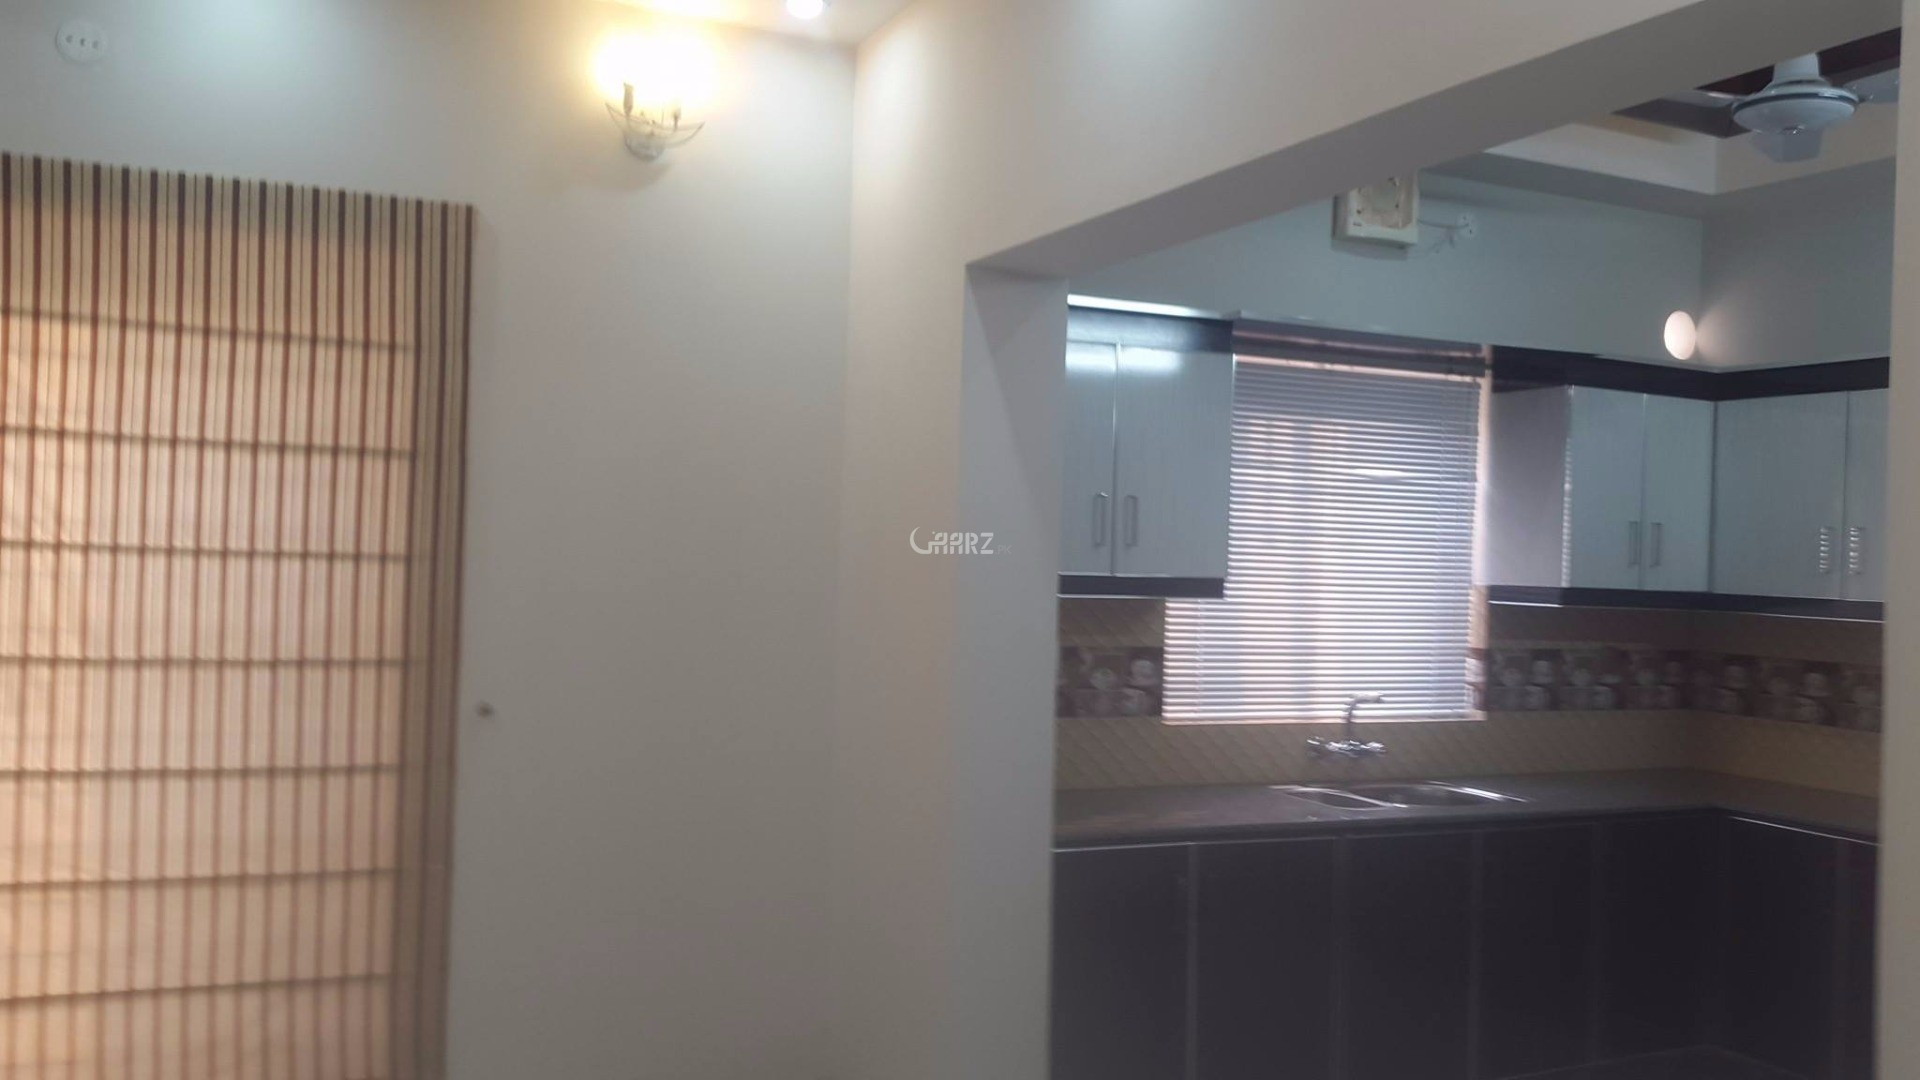 1 Kanal Bungalow For Sale In DHA Phase 6, DHA Defence, Karachi